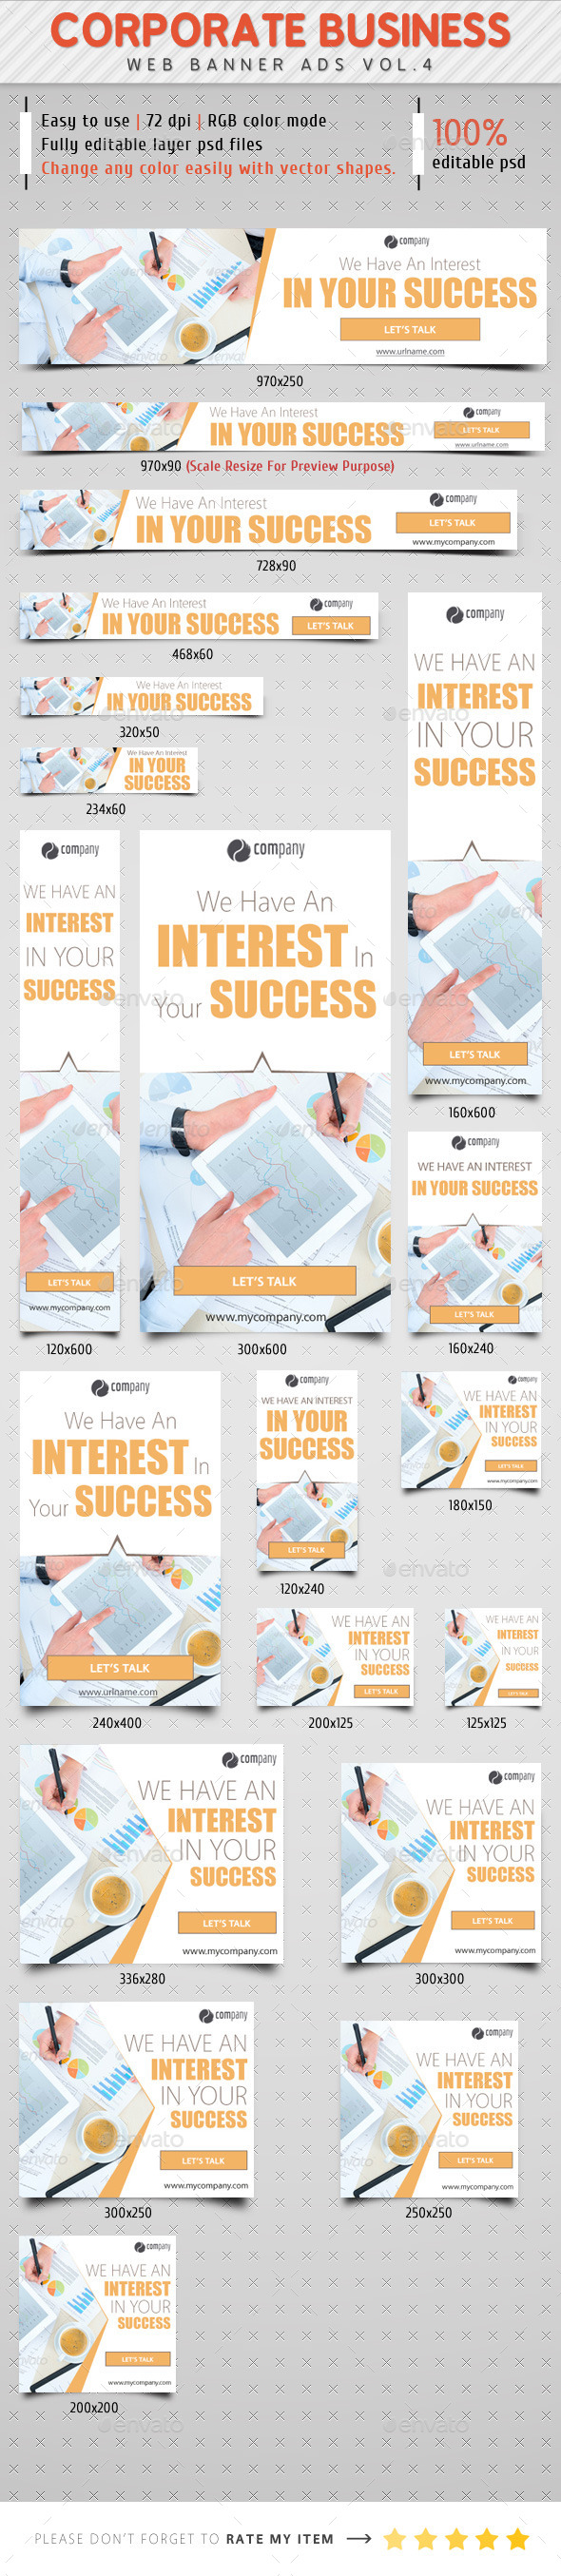 GraphicRiver Corporate Web Banner Ads Vol.4 8953081